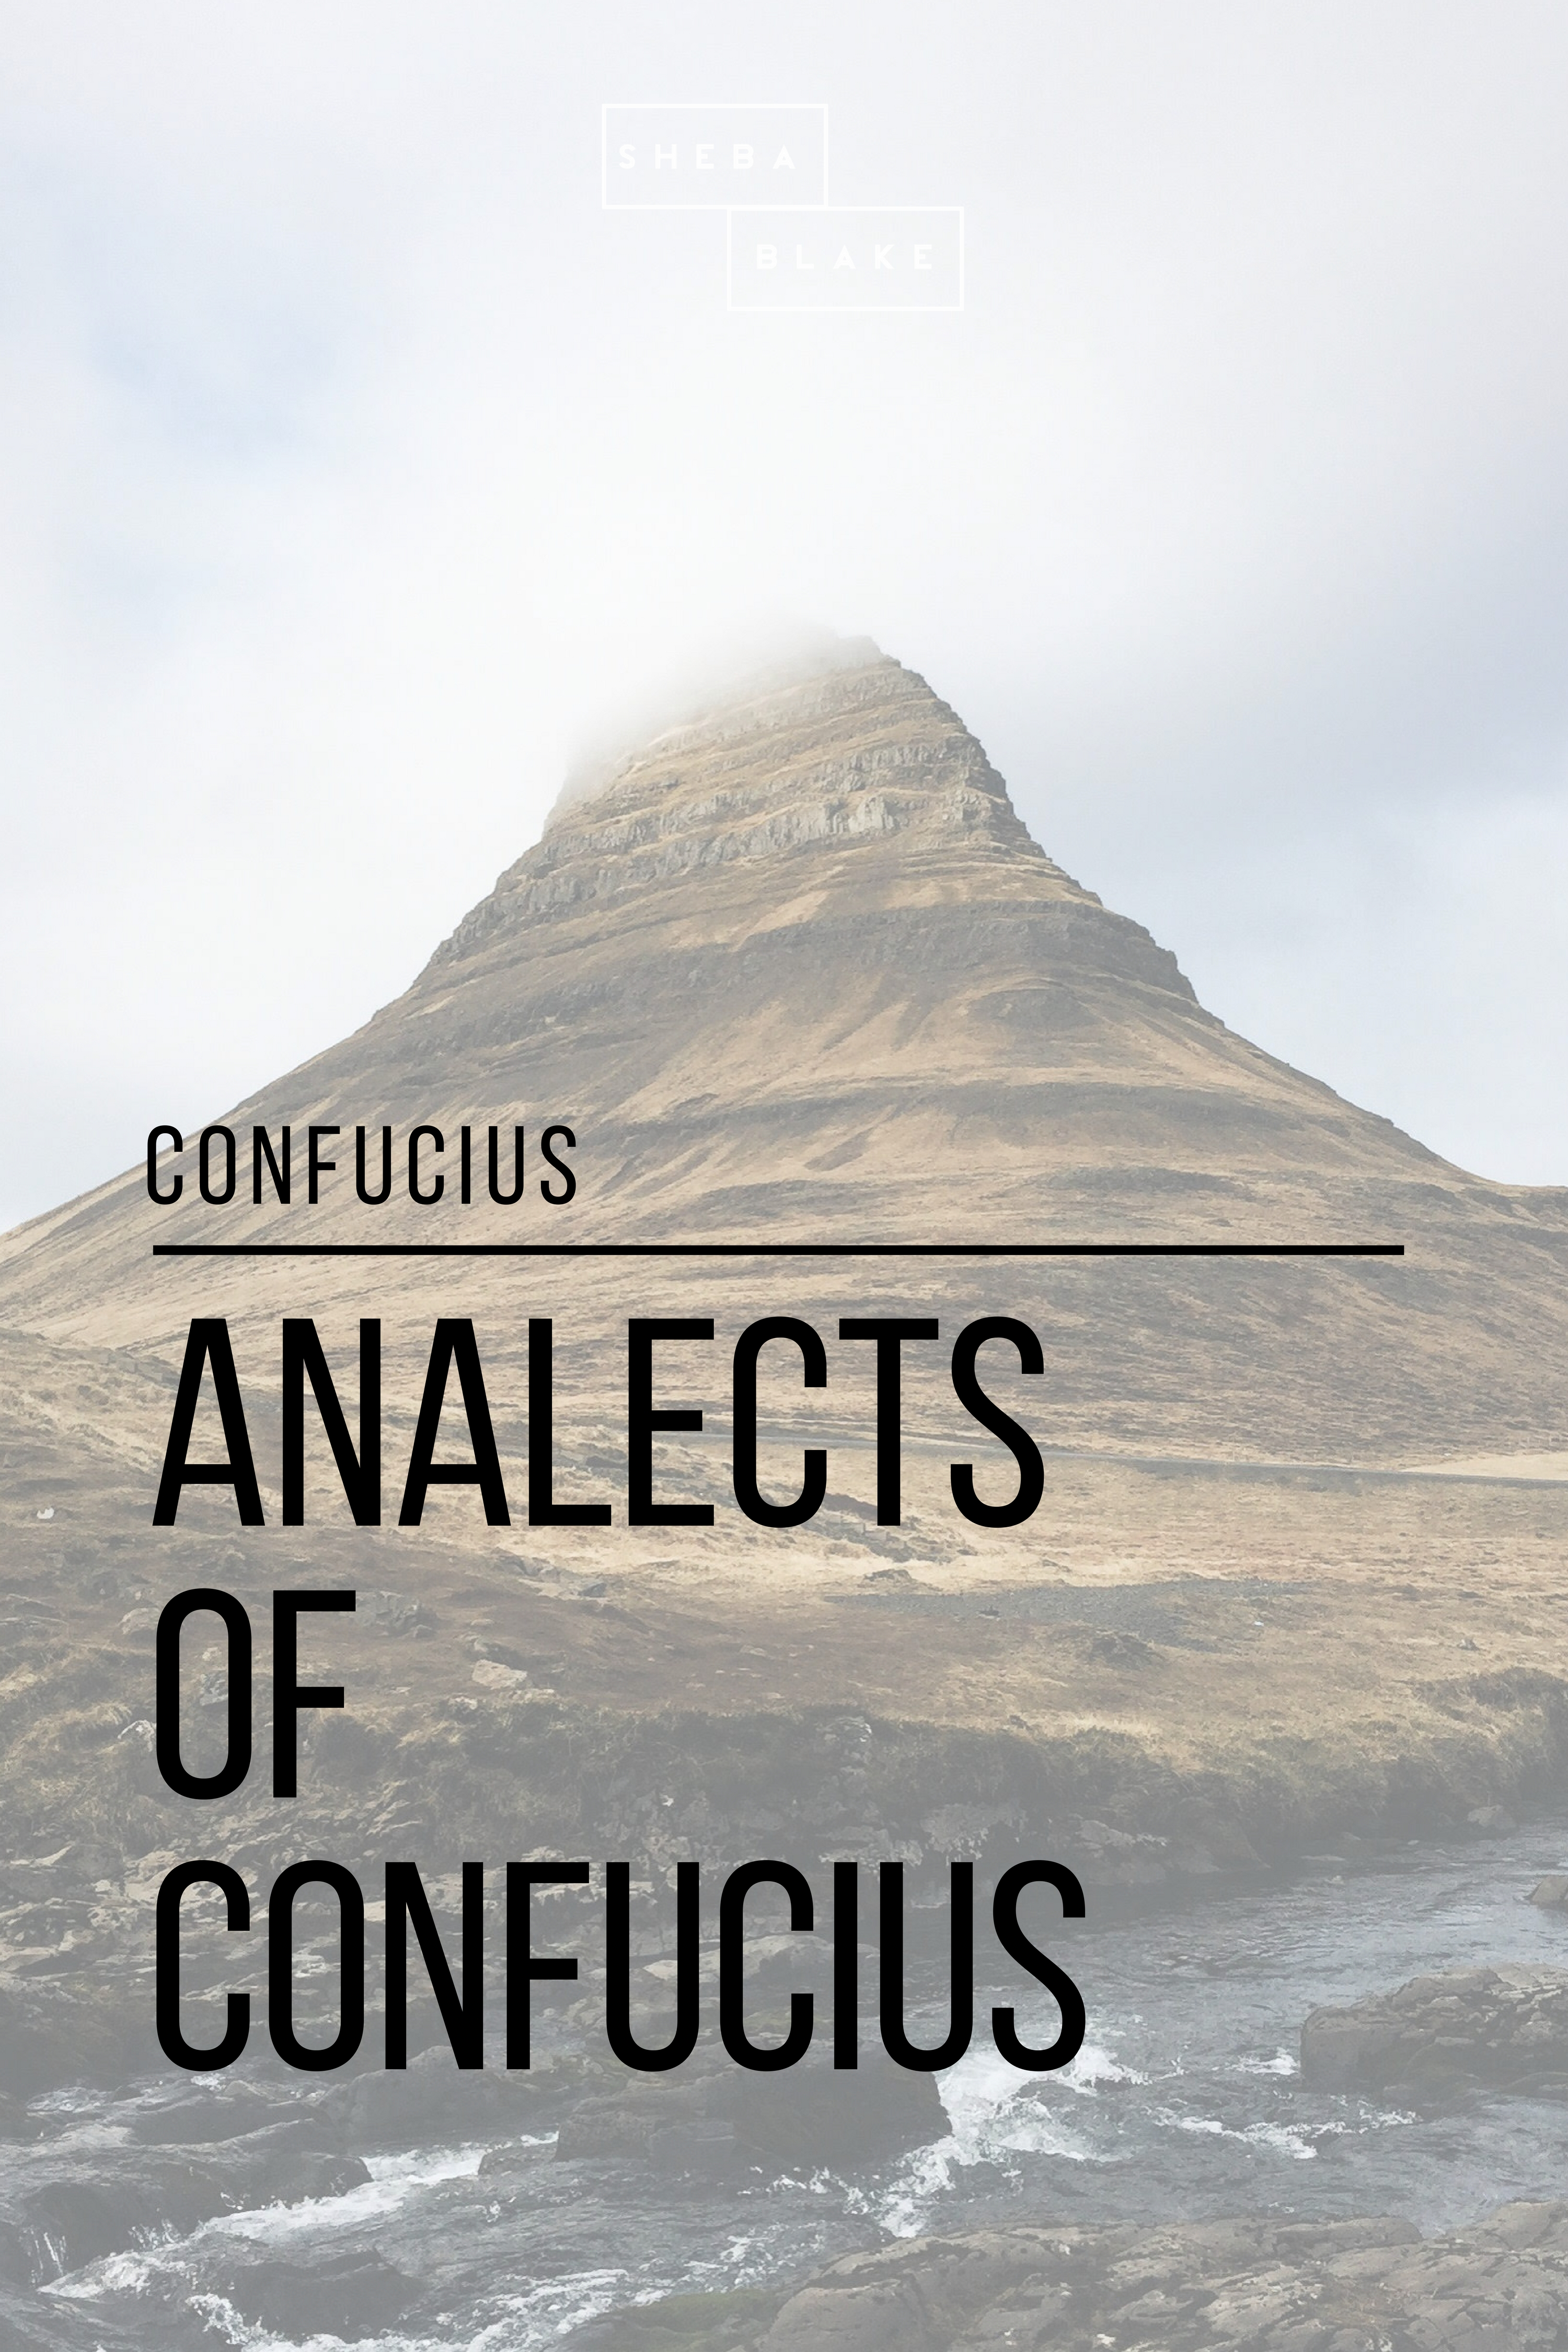 Sheba Blake Analects of Confucius confucius says